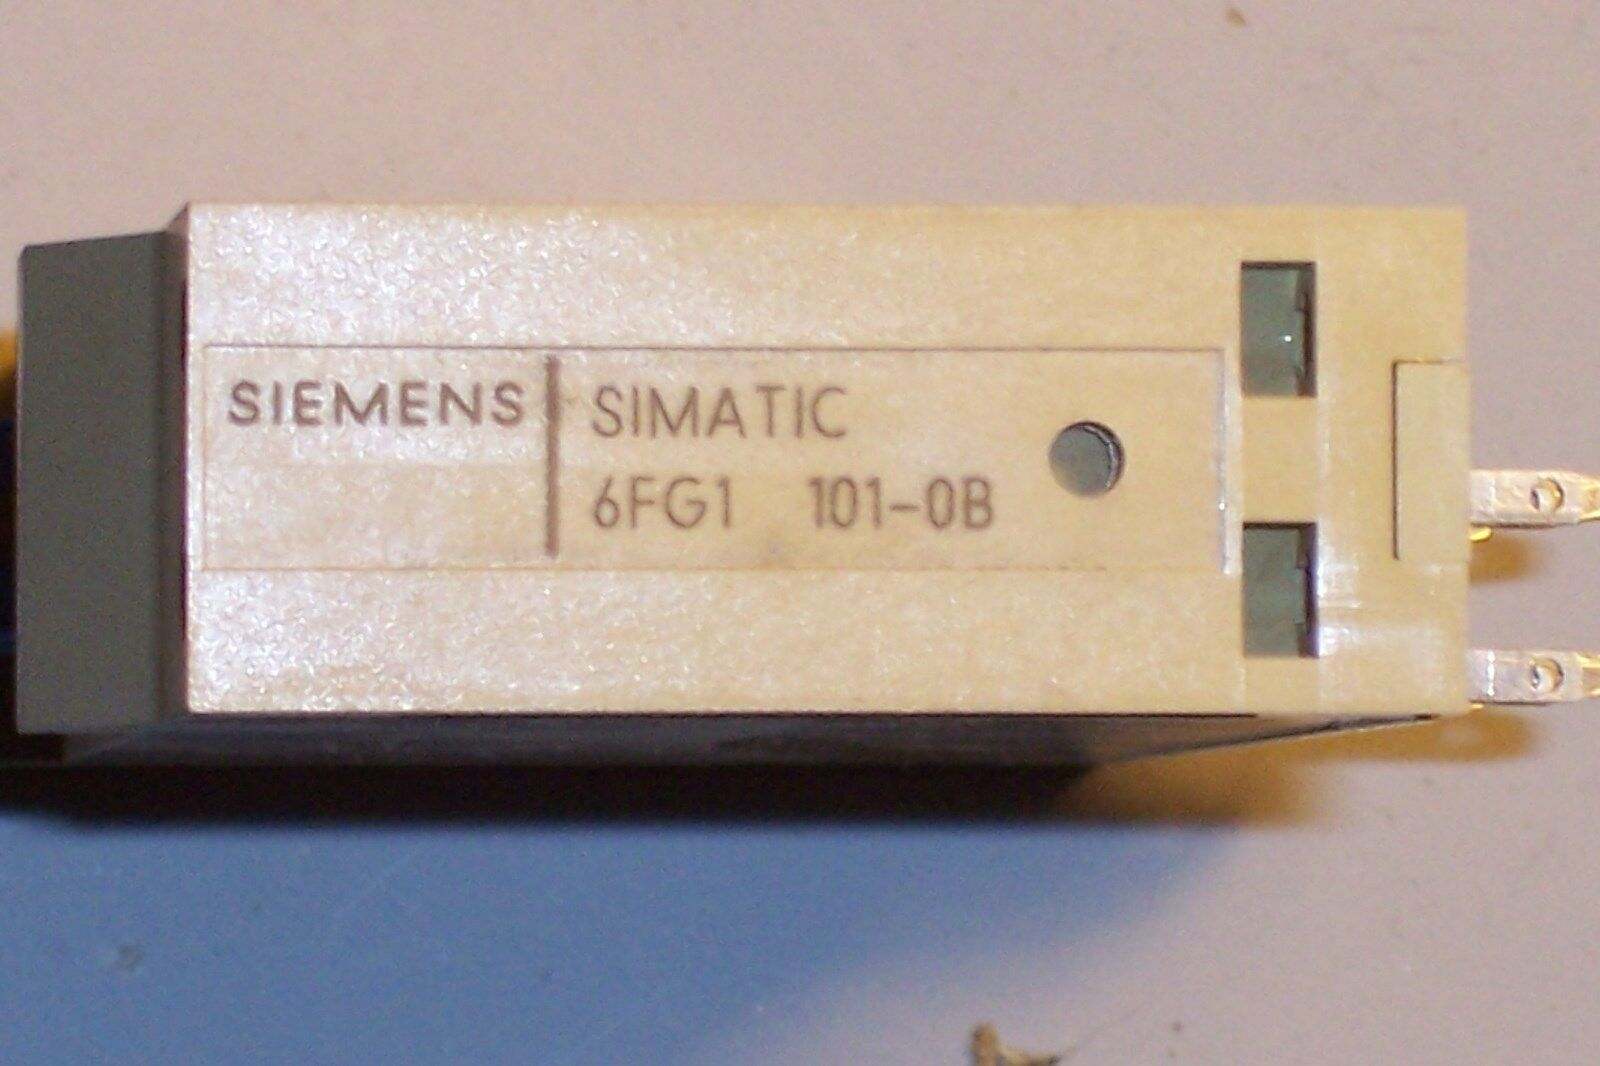 Siemens Simatic 6fg1 101 0b 2 Amp Amplifier Circuit Dopple Block Details About 12v Mini Hifi Pam8610 Audio Stereo Norton Secured Powered By Verisign